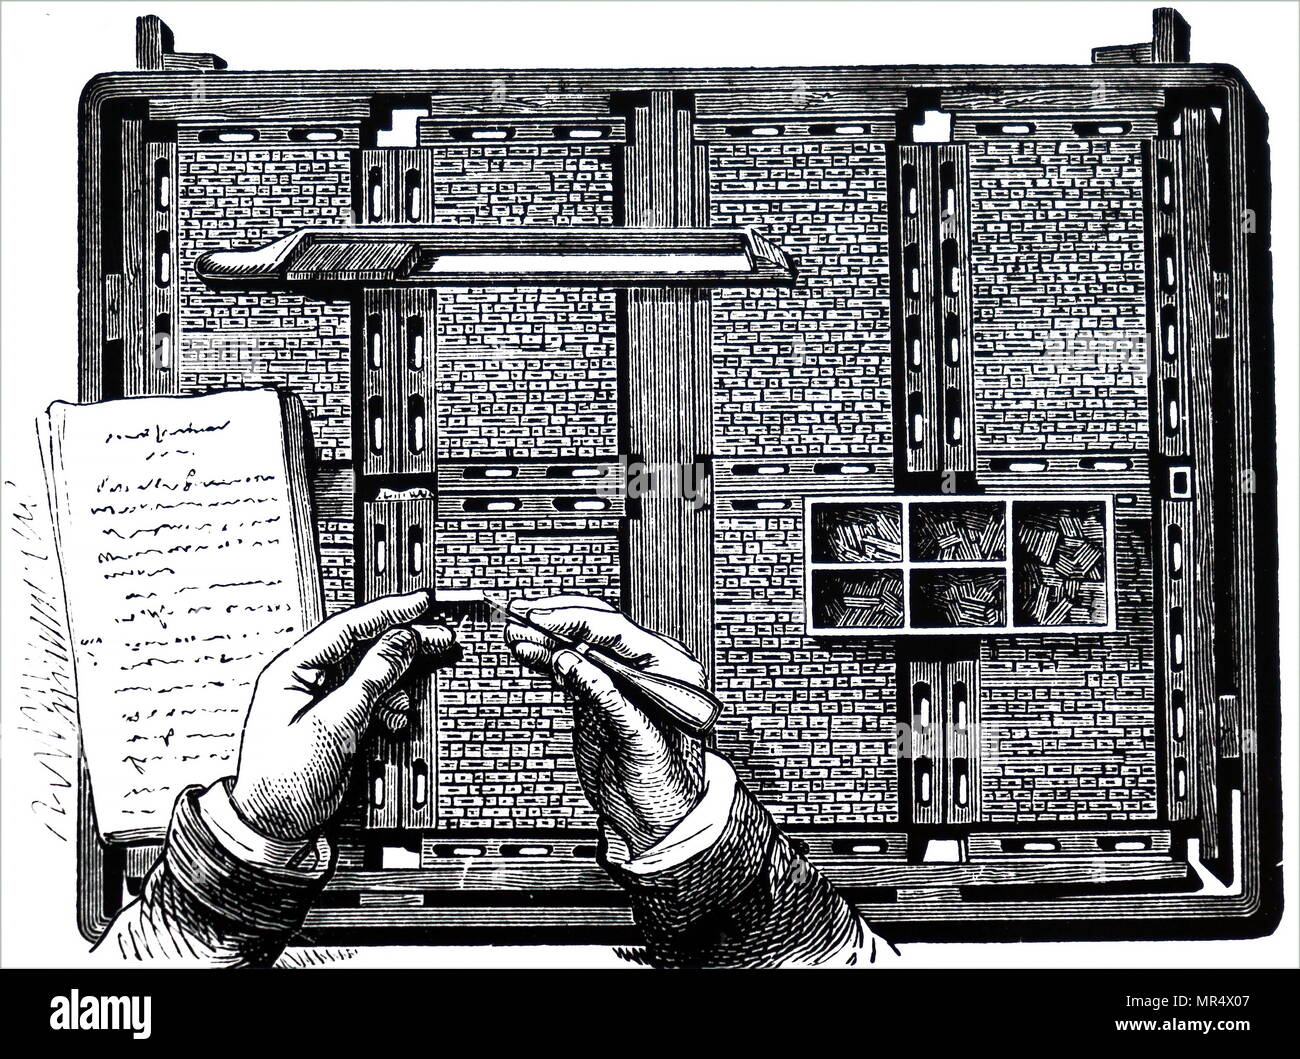 Engraving depicting a compositor making corrections at gallery proof stage. Pages of type with furniture for spacing pages have been locked in chase by wedges called Quoins. The composing stick with replacements is lying above the compositors hands, ready for corrections to be slipped in when mistakes have been removed. Dated 19th century - Stock Image